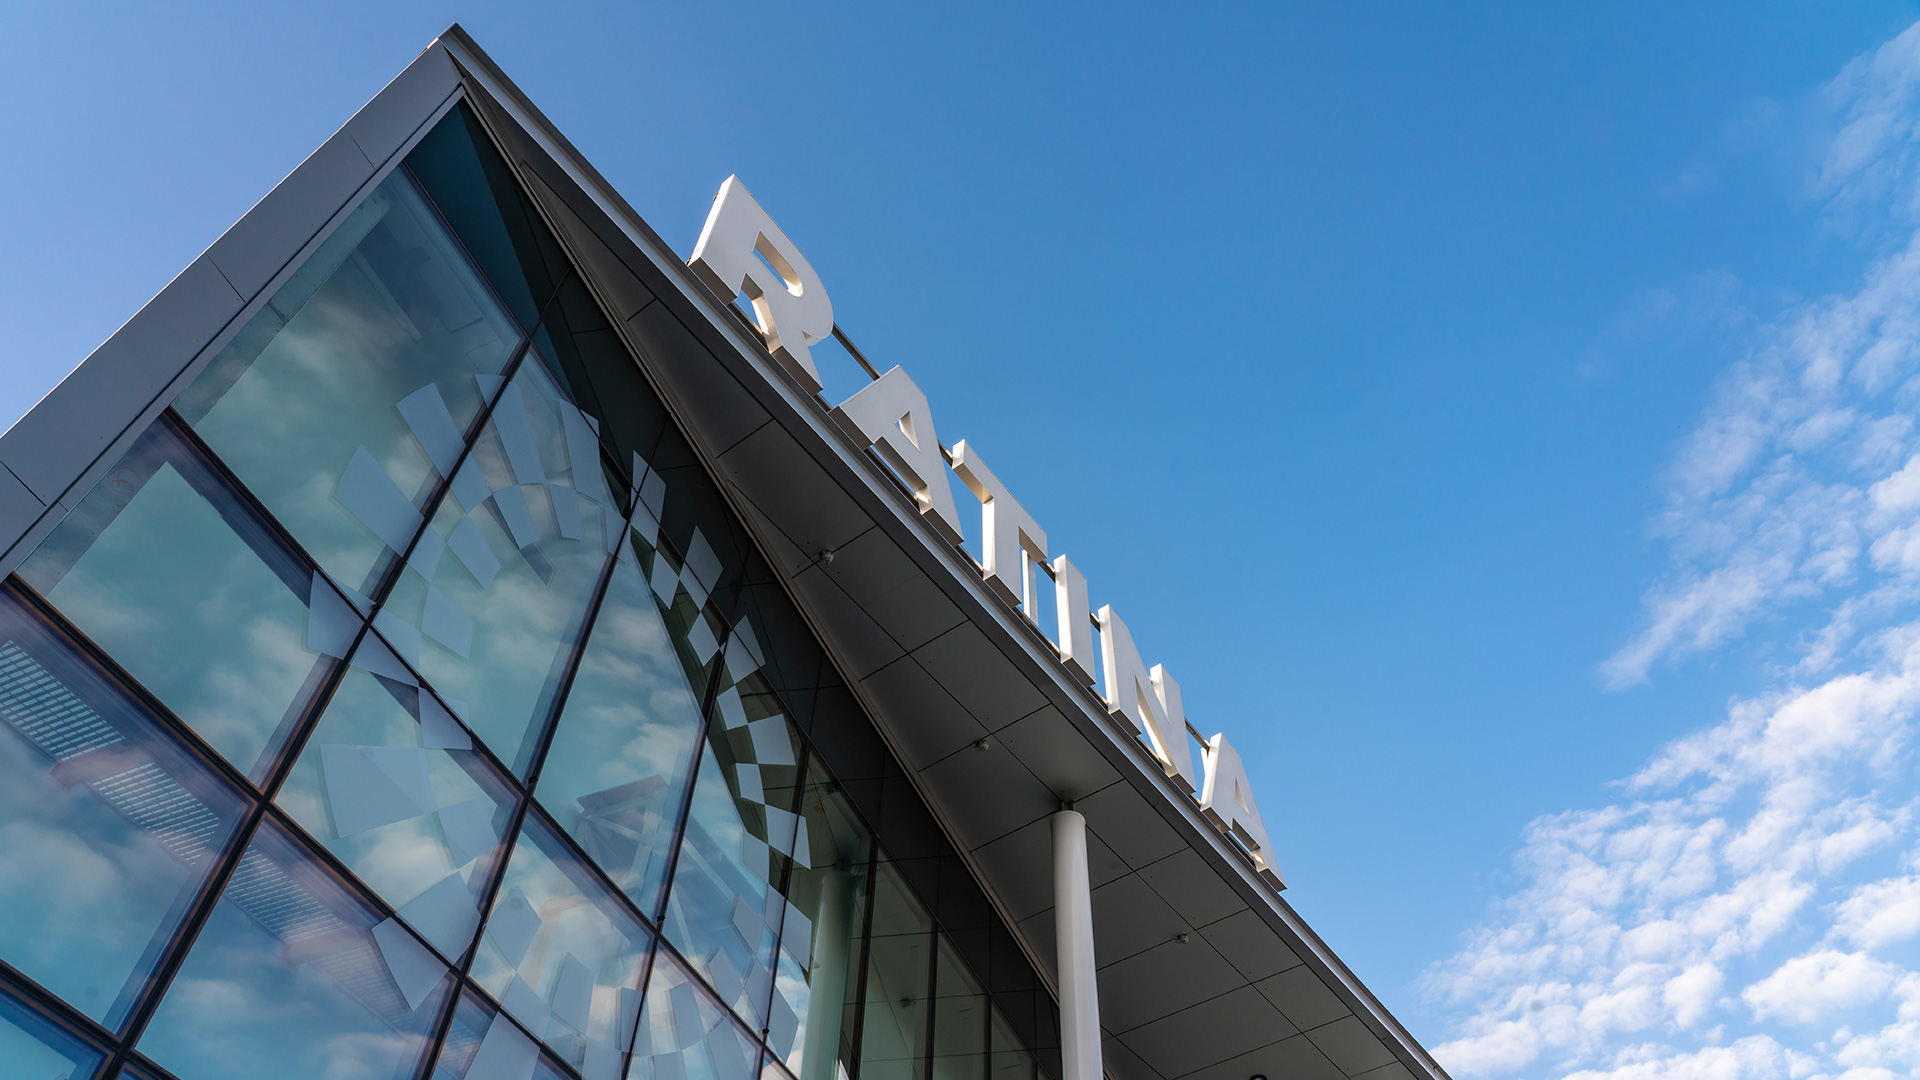 The new Ratina shopping centre gives an energy boost to Tampere's urban culture